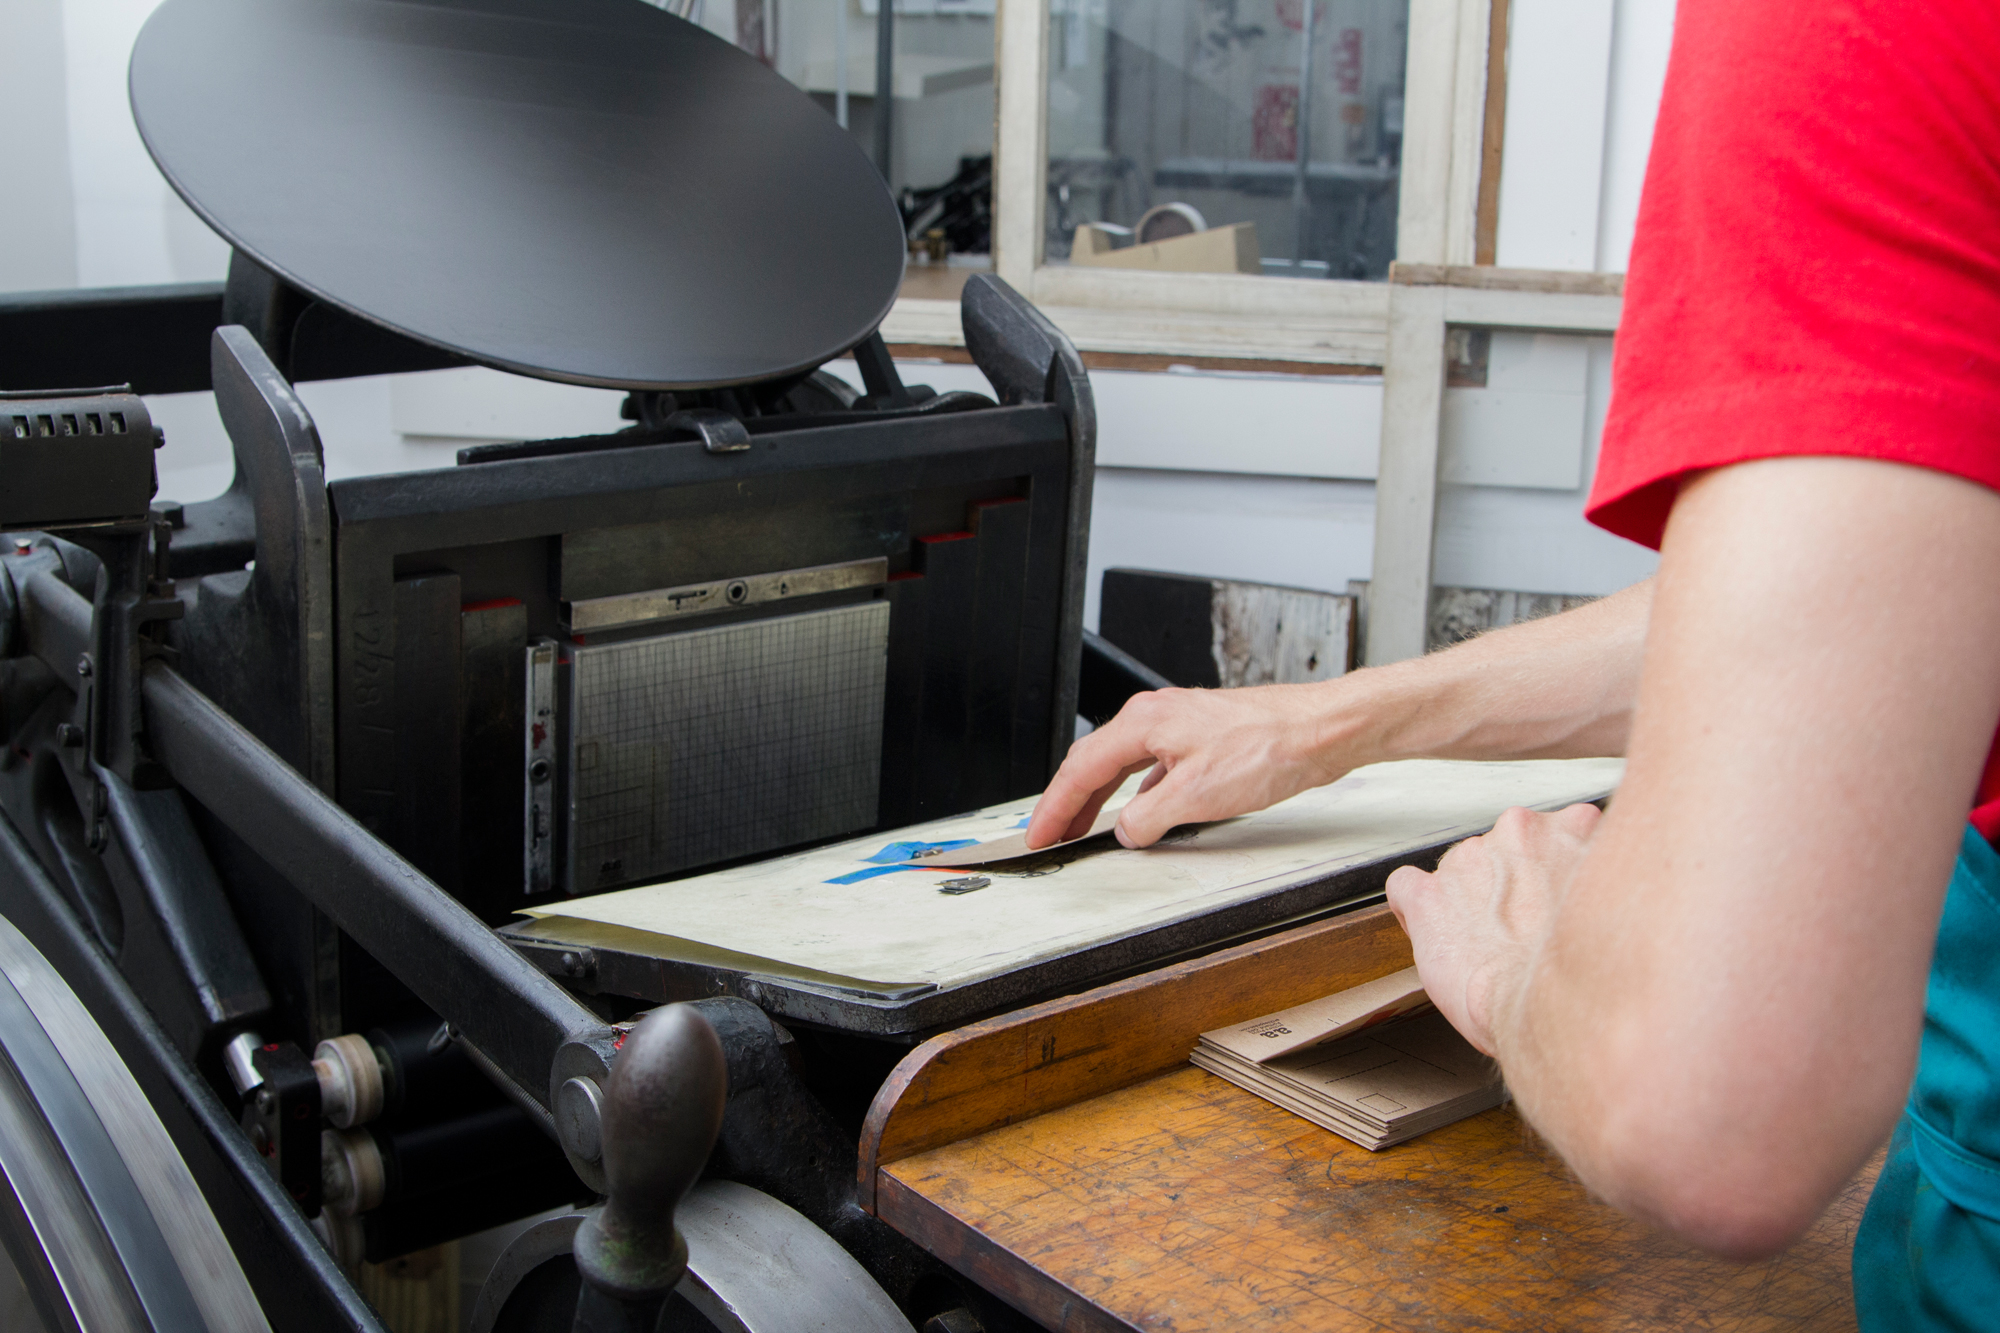 Archie Archambault of Archie's Press sets up a printing job on his Chandle & Price press.